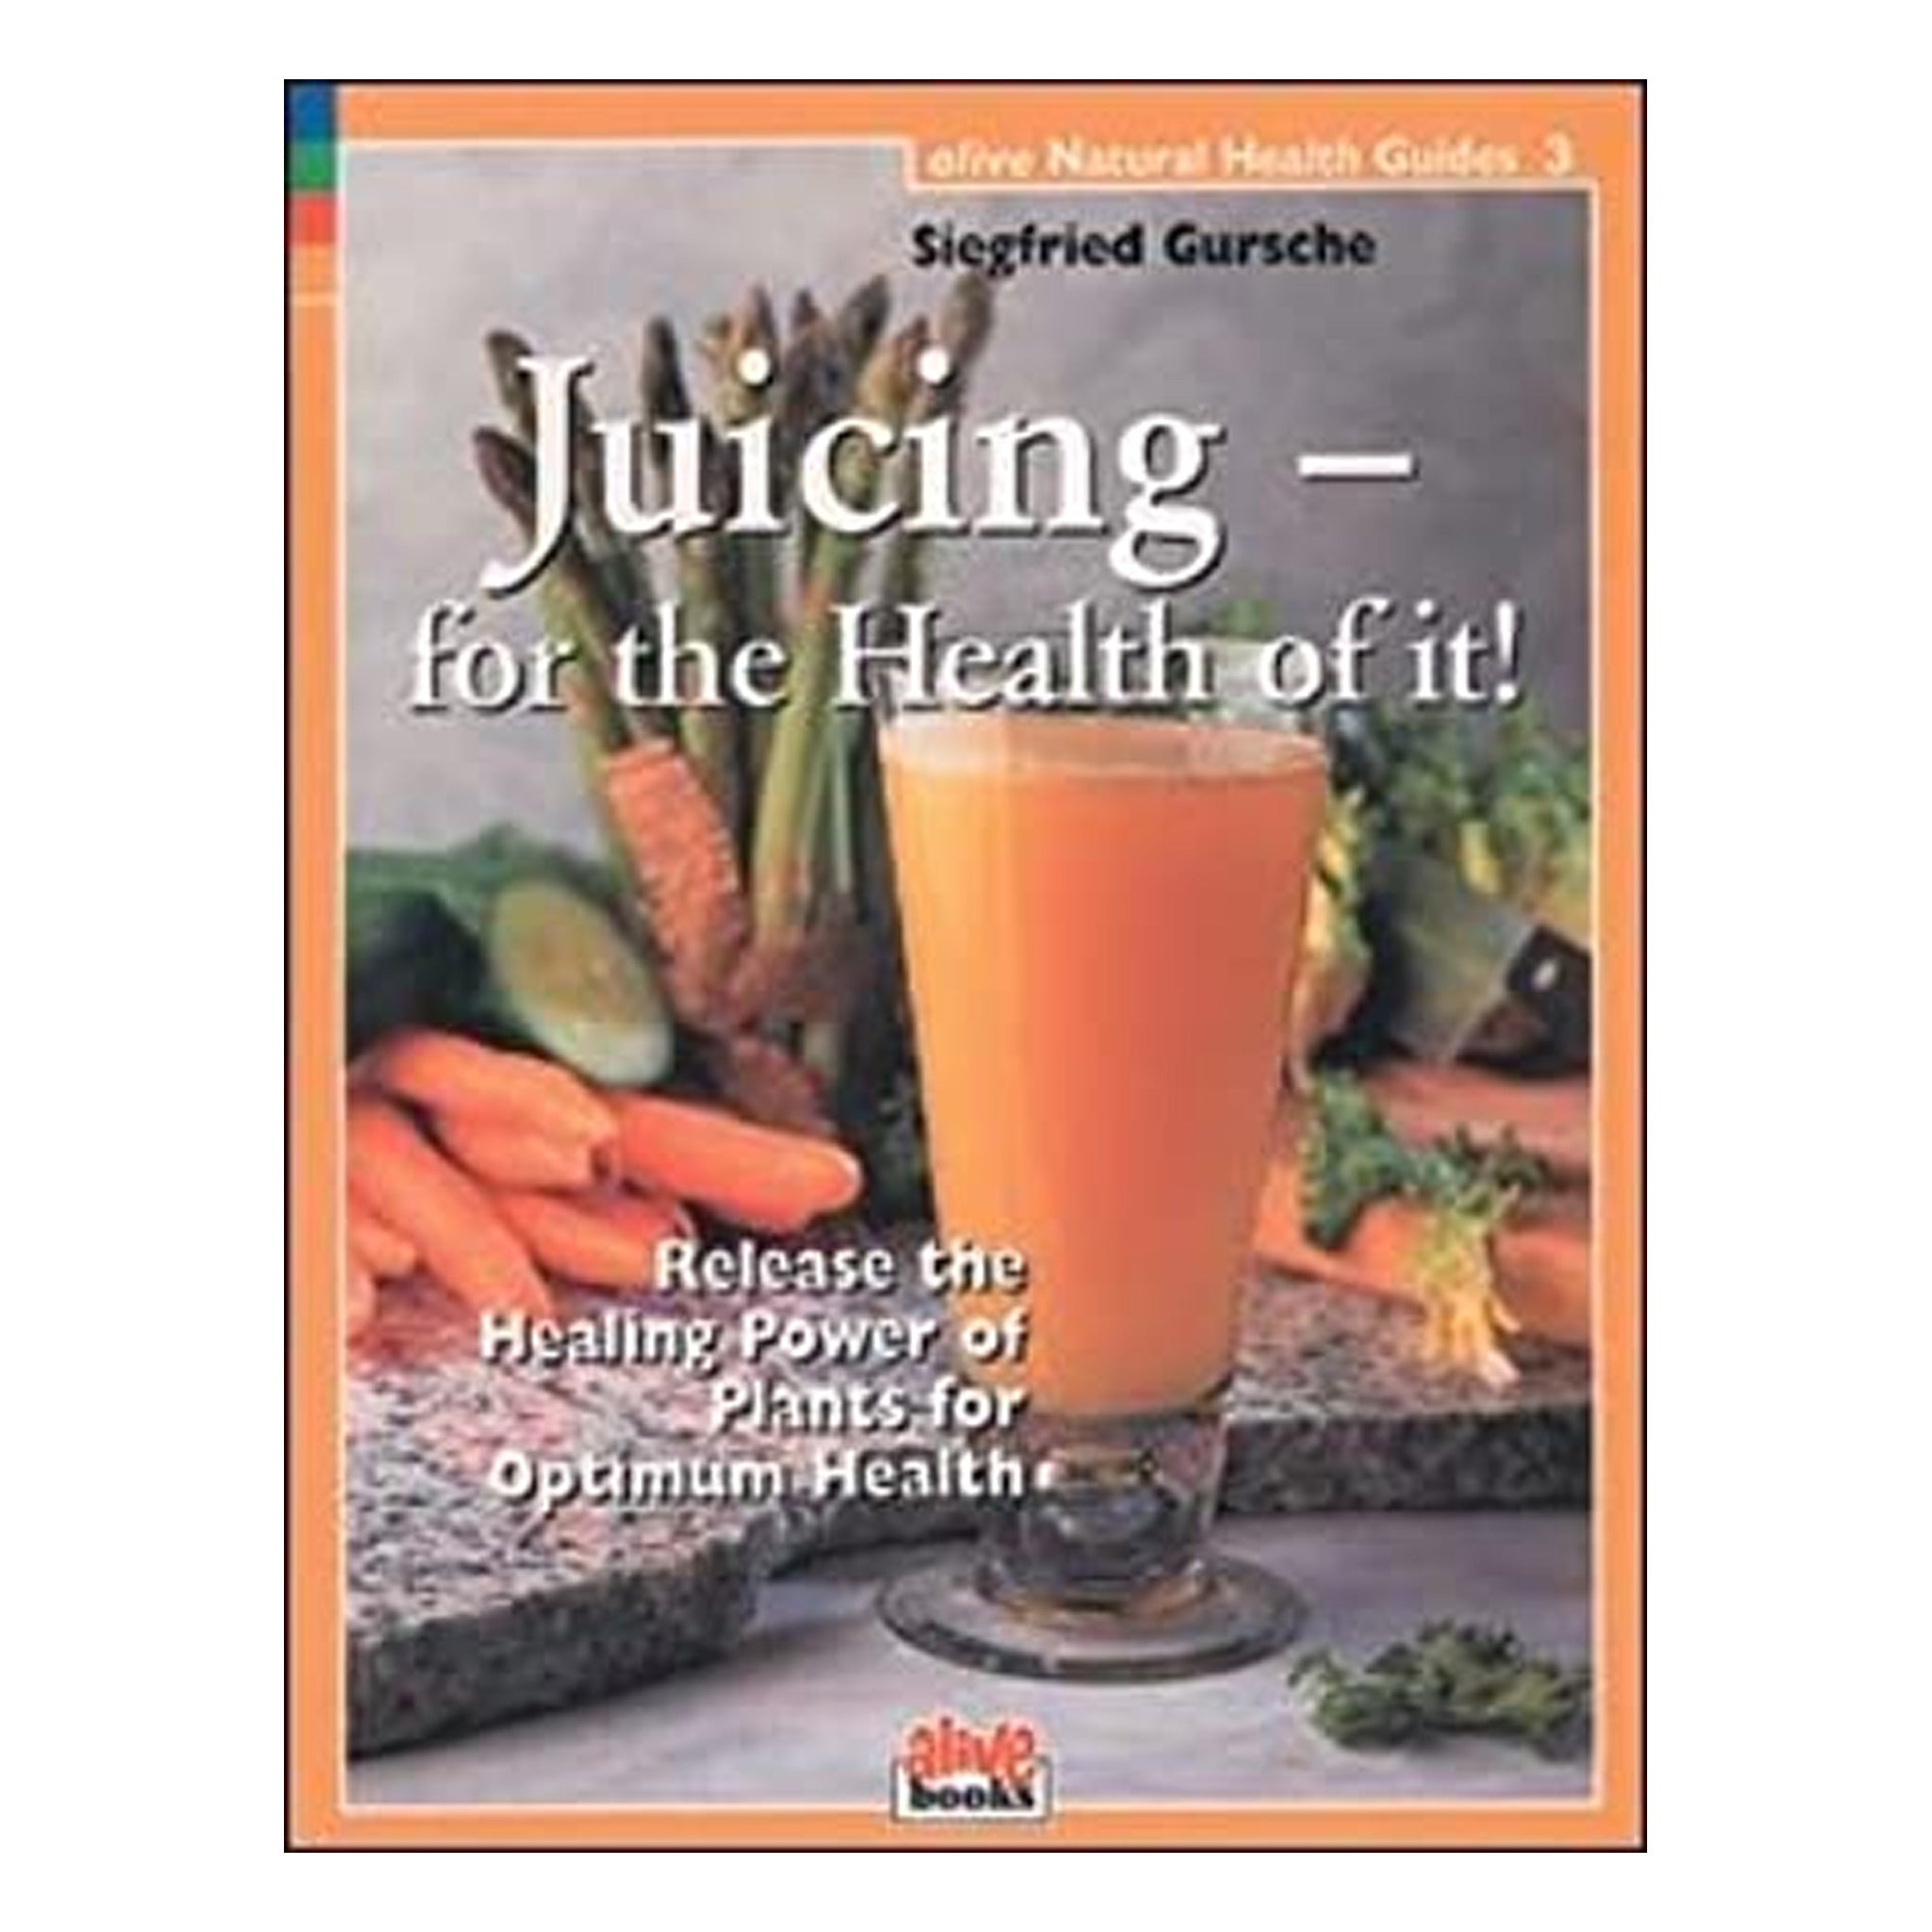 Juicing - for the Health of it! GPBSG02 - Tribest